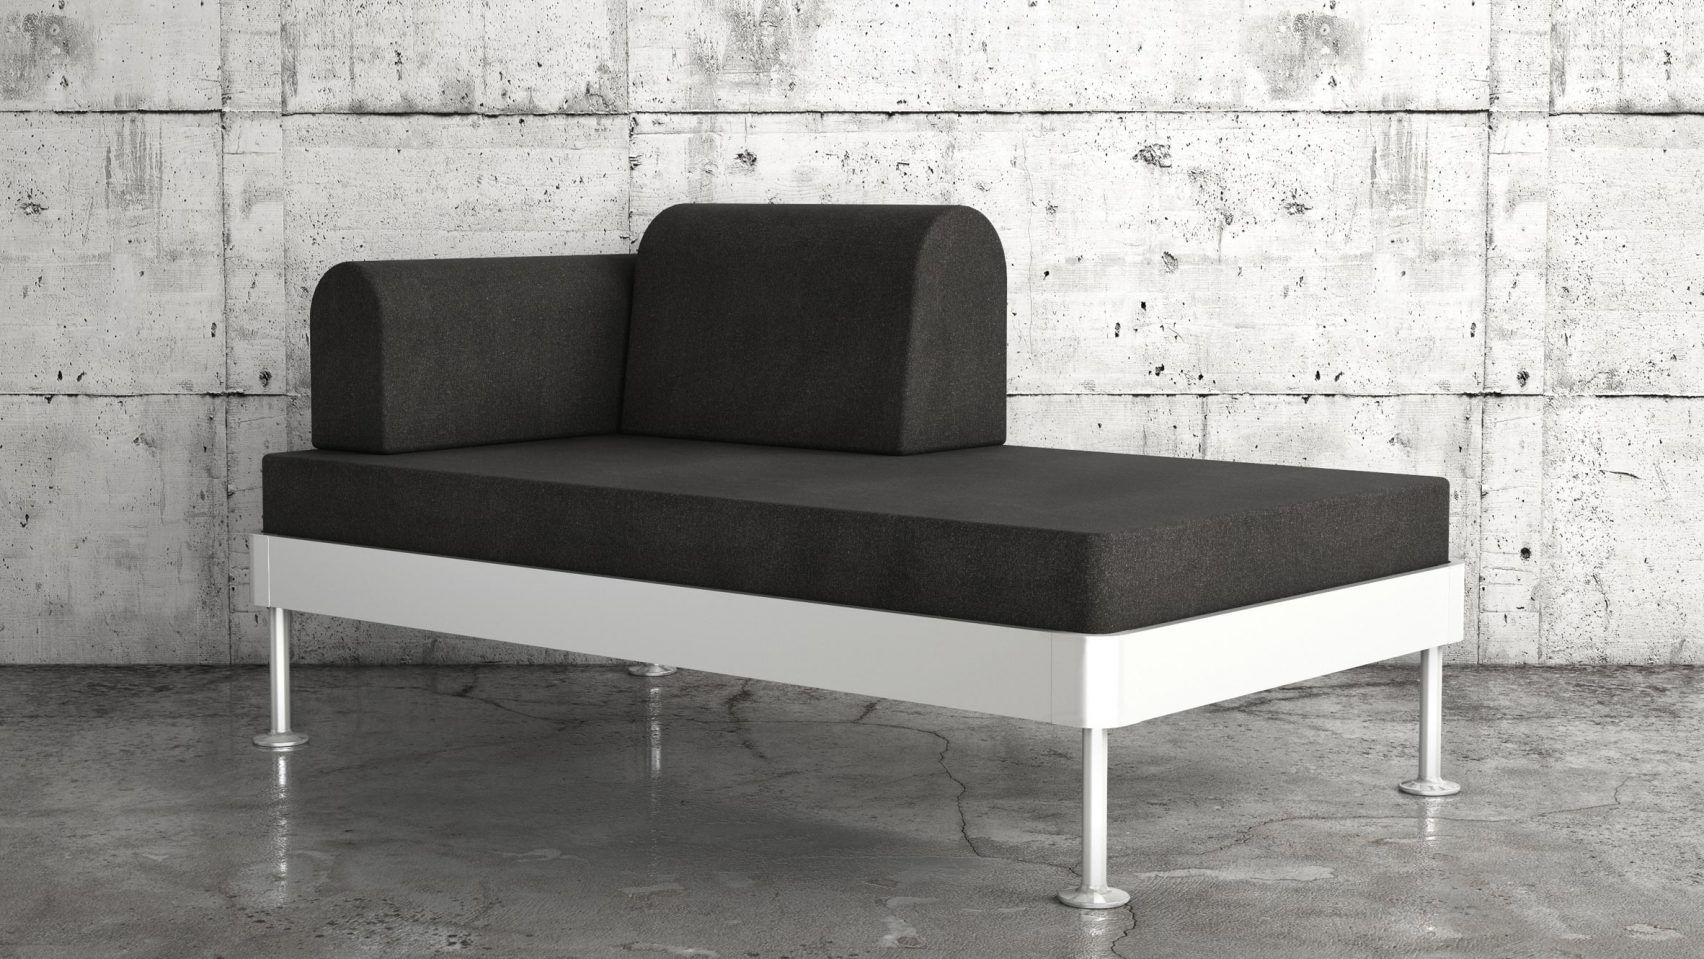 reveals tom dixon's delaktig modular bed and sofa, Wohnzimmer dekoo